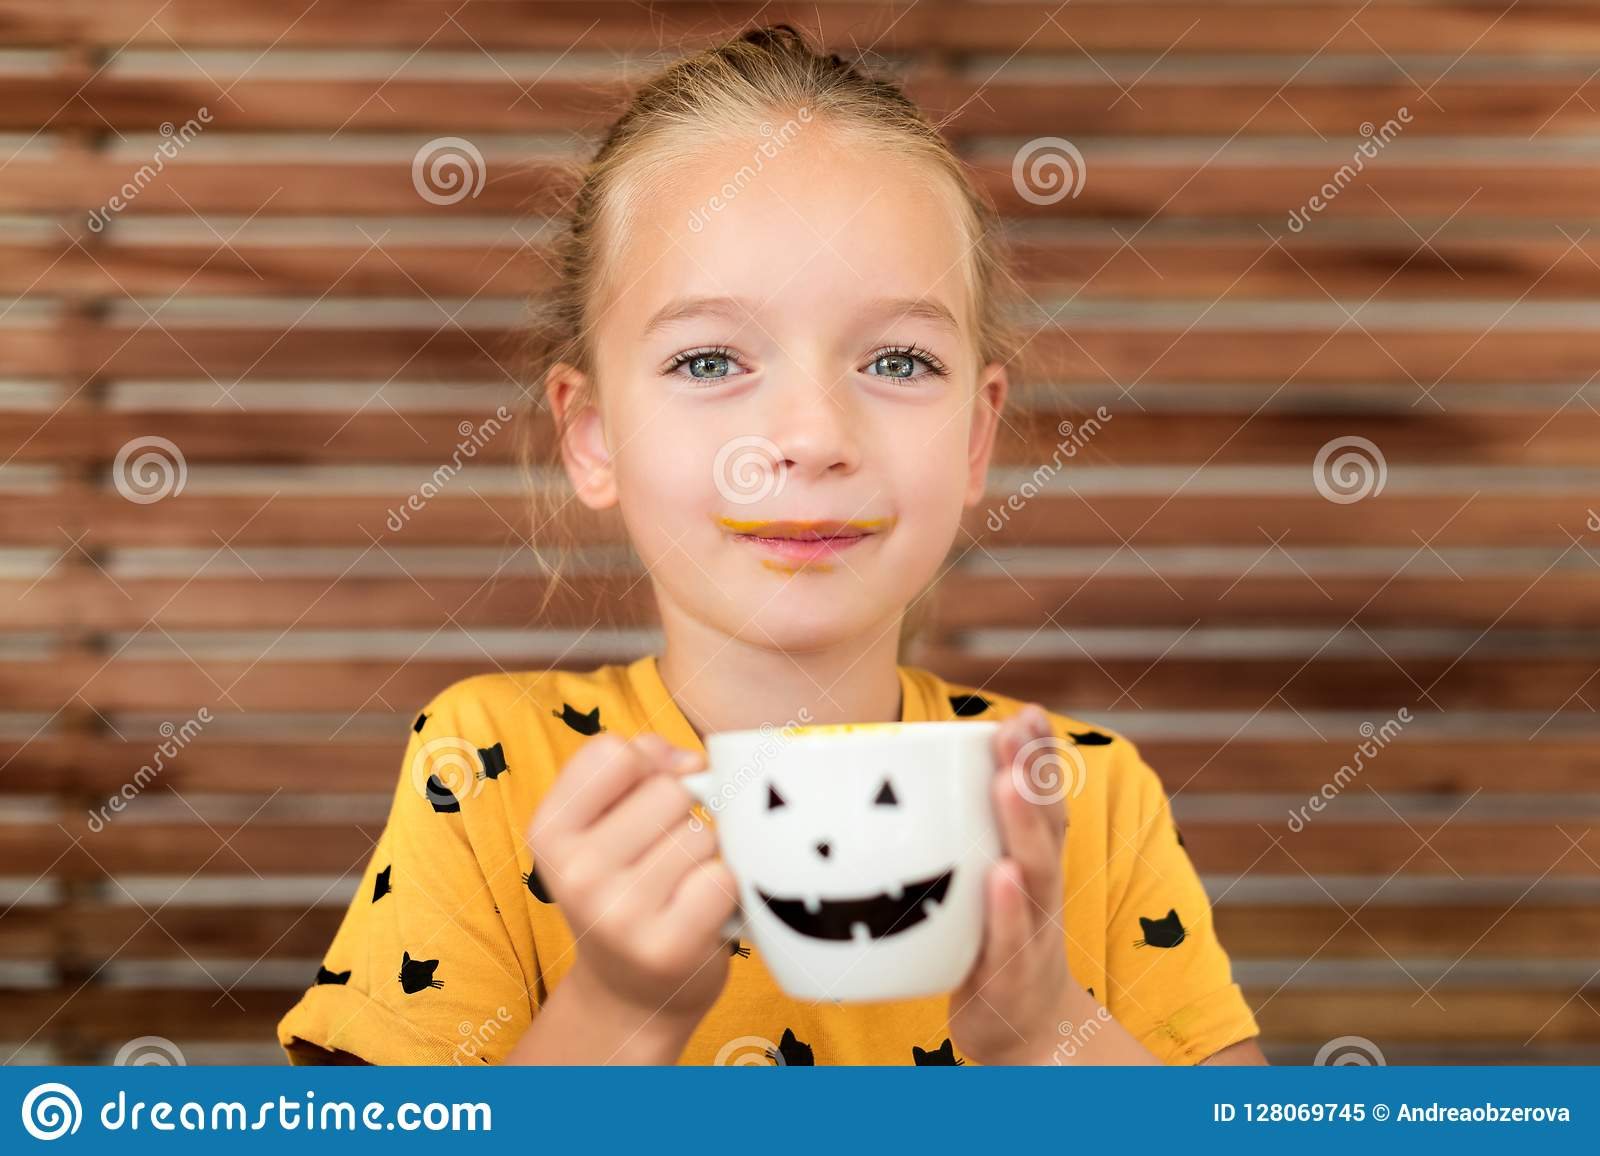 Cute little girl drinking pumpkin soup out of a cup with Halloween anthropomorphic smiley face. Halloween conceptual background.